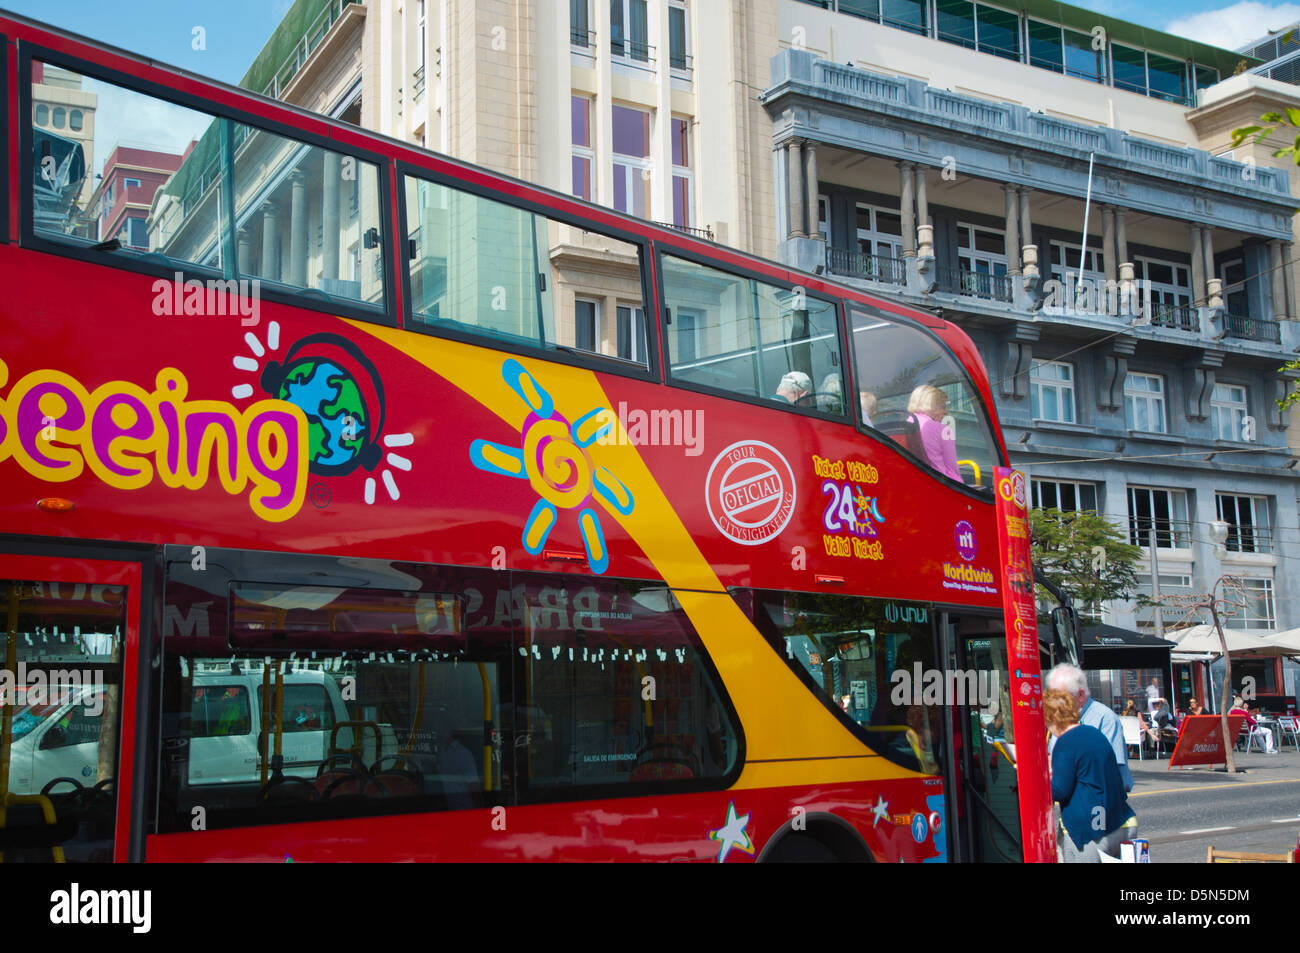 Double decker sightseeing bus at Plaza de la Candelaria square Santa Cruz de Tenerife city Tenerife island the Canary - Stock Image